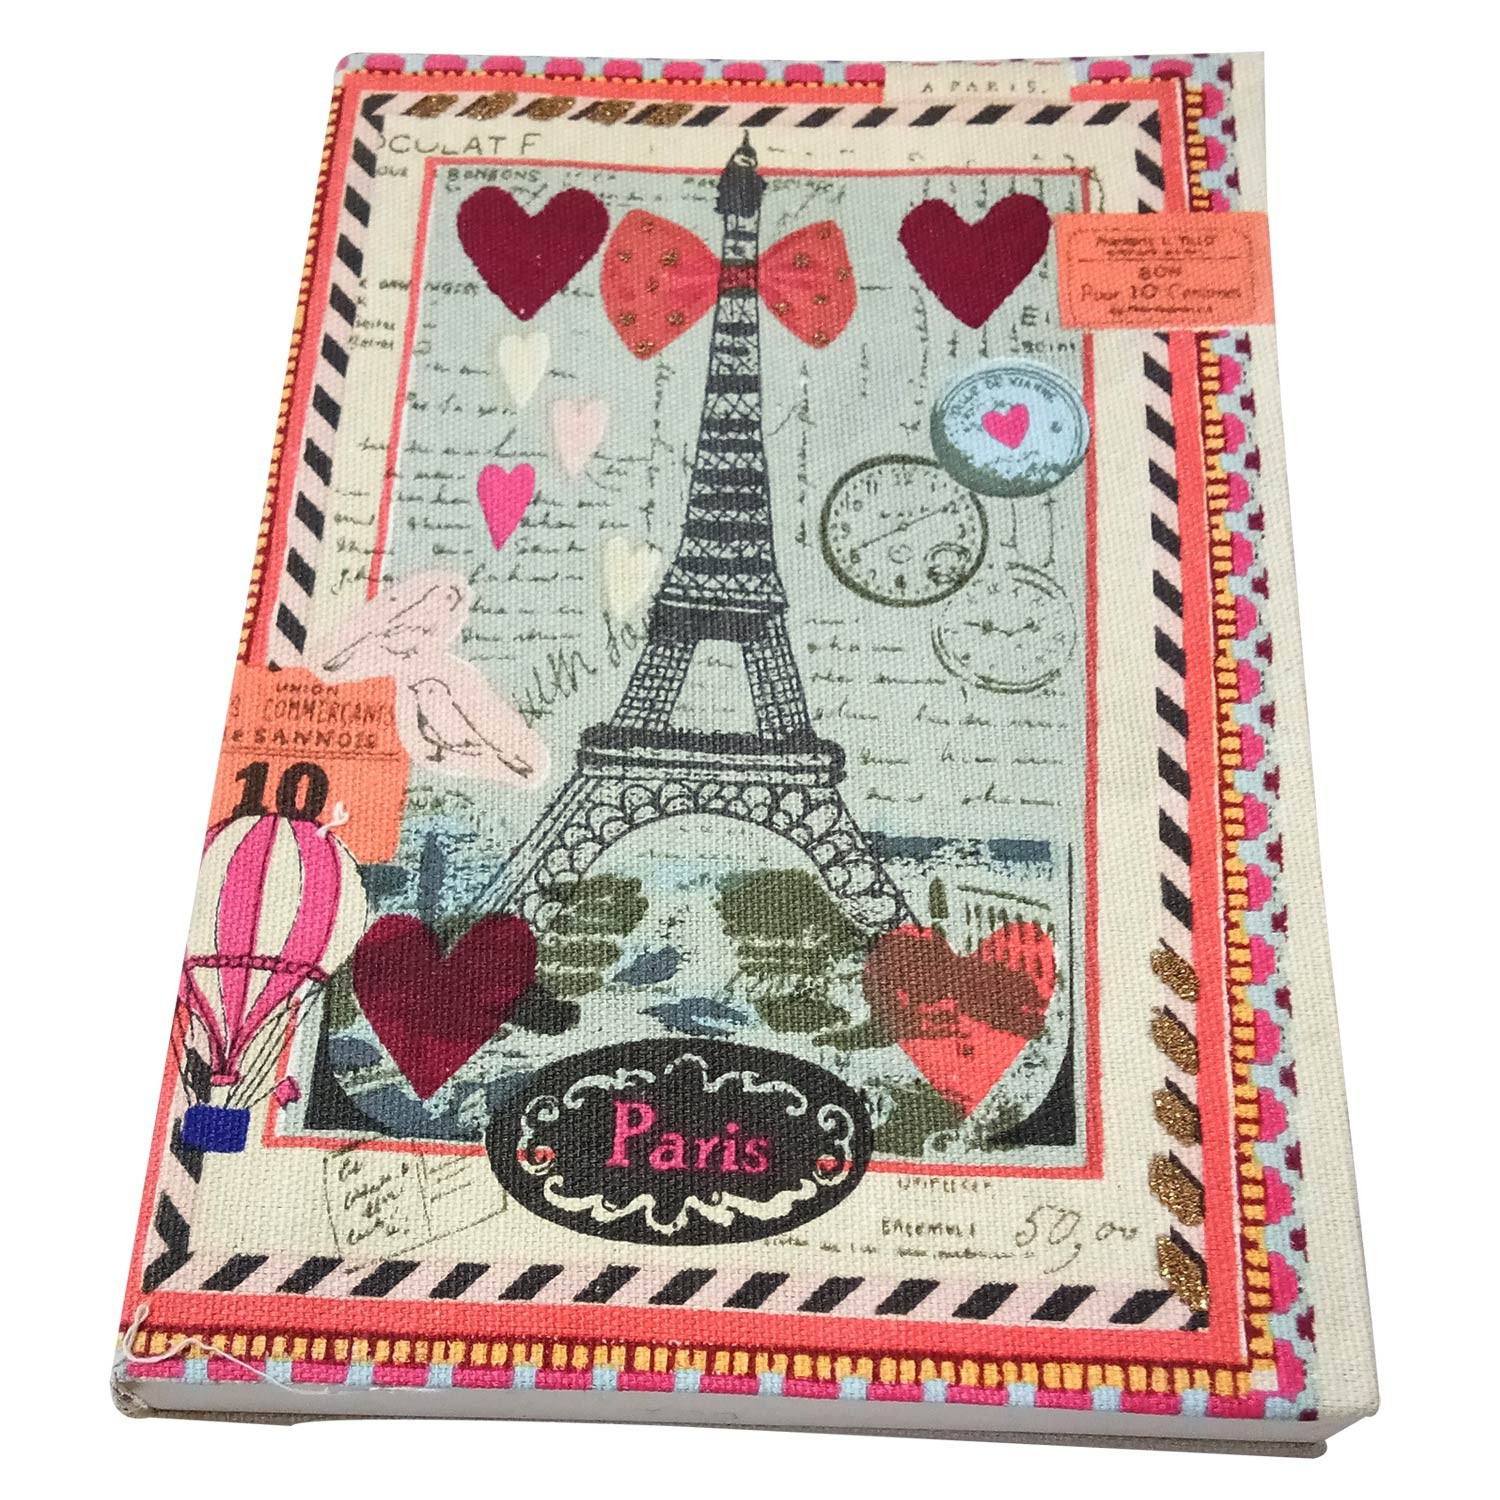 Classy Handmade Paris Dreams Cloth Diary by people of urban slums